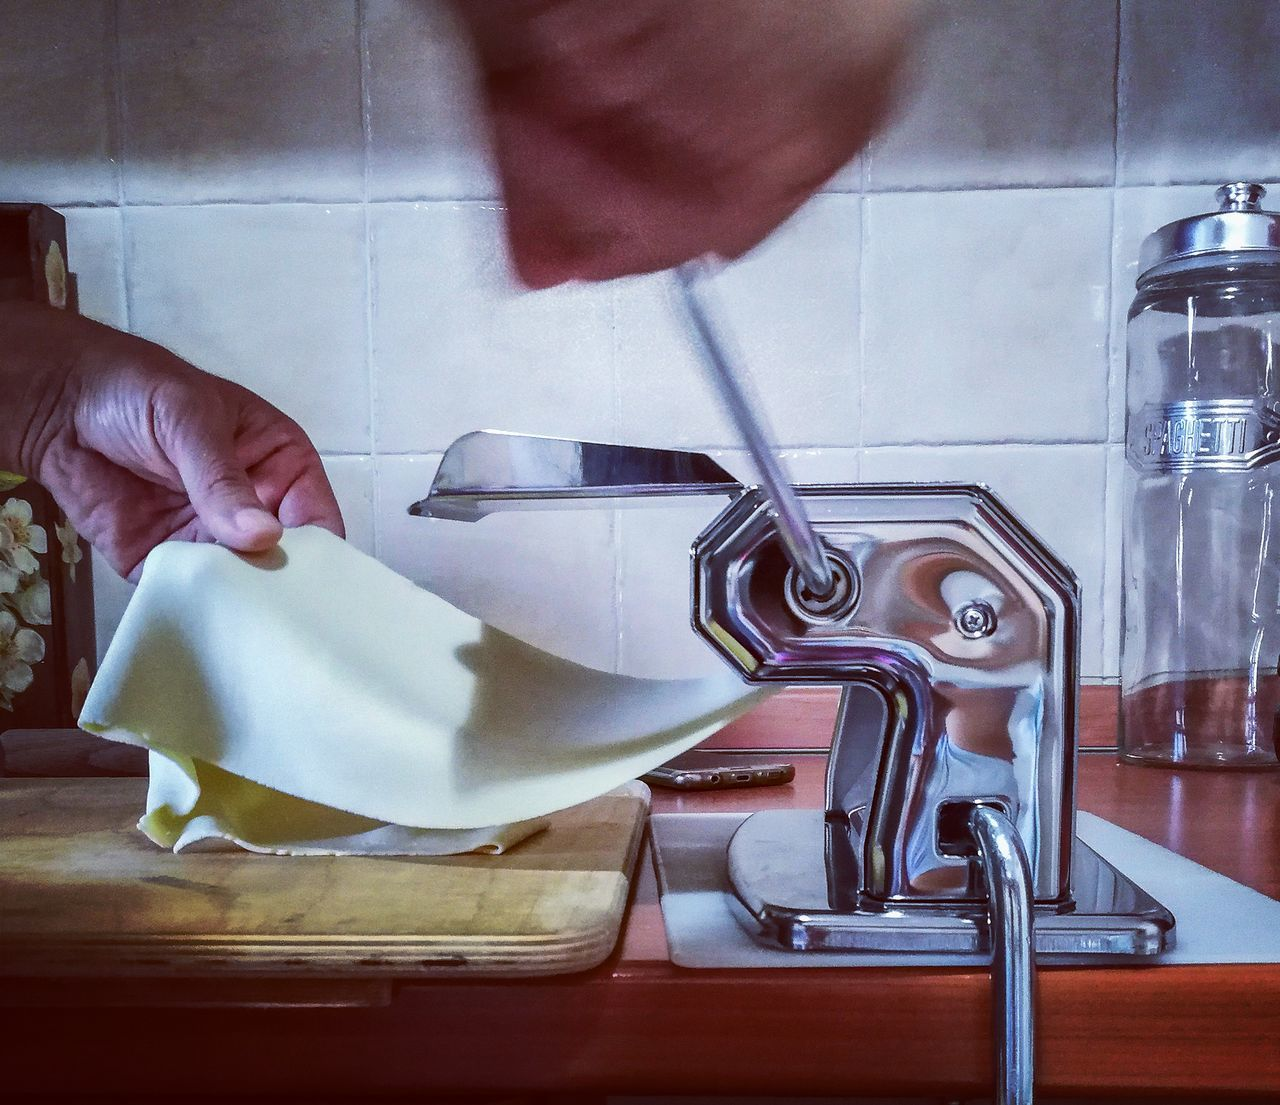 Kitchen Handmade Cooking Fettuccine Sfoglia Pastafresca Pastafattaamano Pastafattaincasa Love Lover Husband Human Hand Human Body Part One Man Only One Person Only Men Adults Only People Indoors  Adult Washing Men Faucet Occupation EyeEmNewHere Place Of Heart